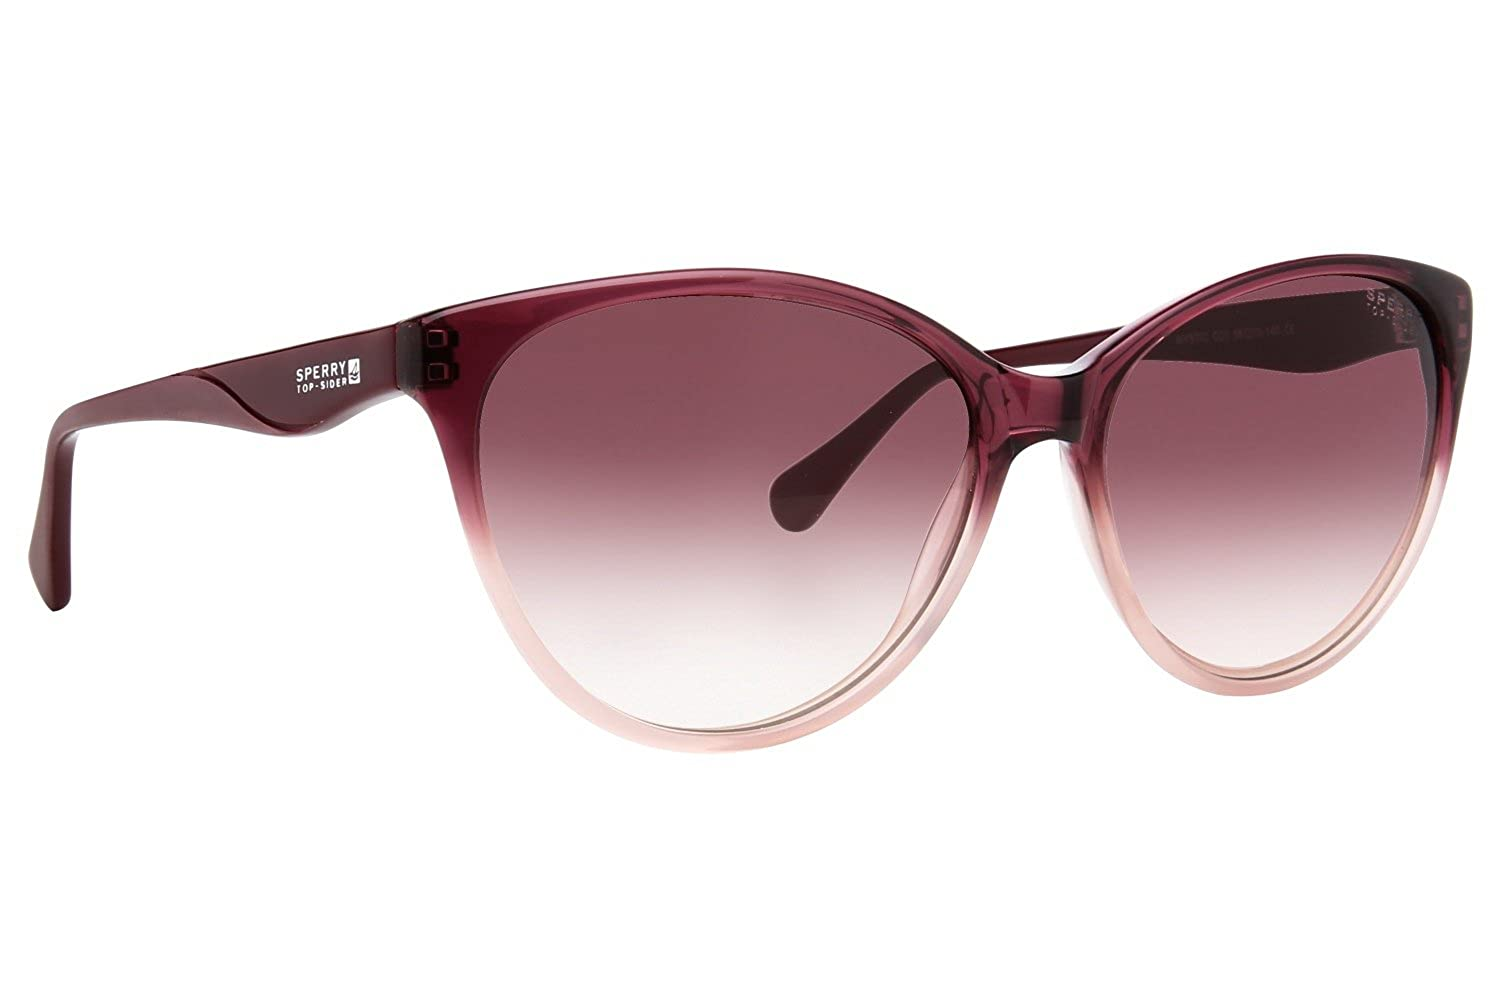 24c45715708 Amazon.com  Sperry Top-Sider Mystic Womens Sunglasses - Eggplant Fade Eggplant  Gradient  Clothing